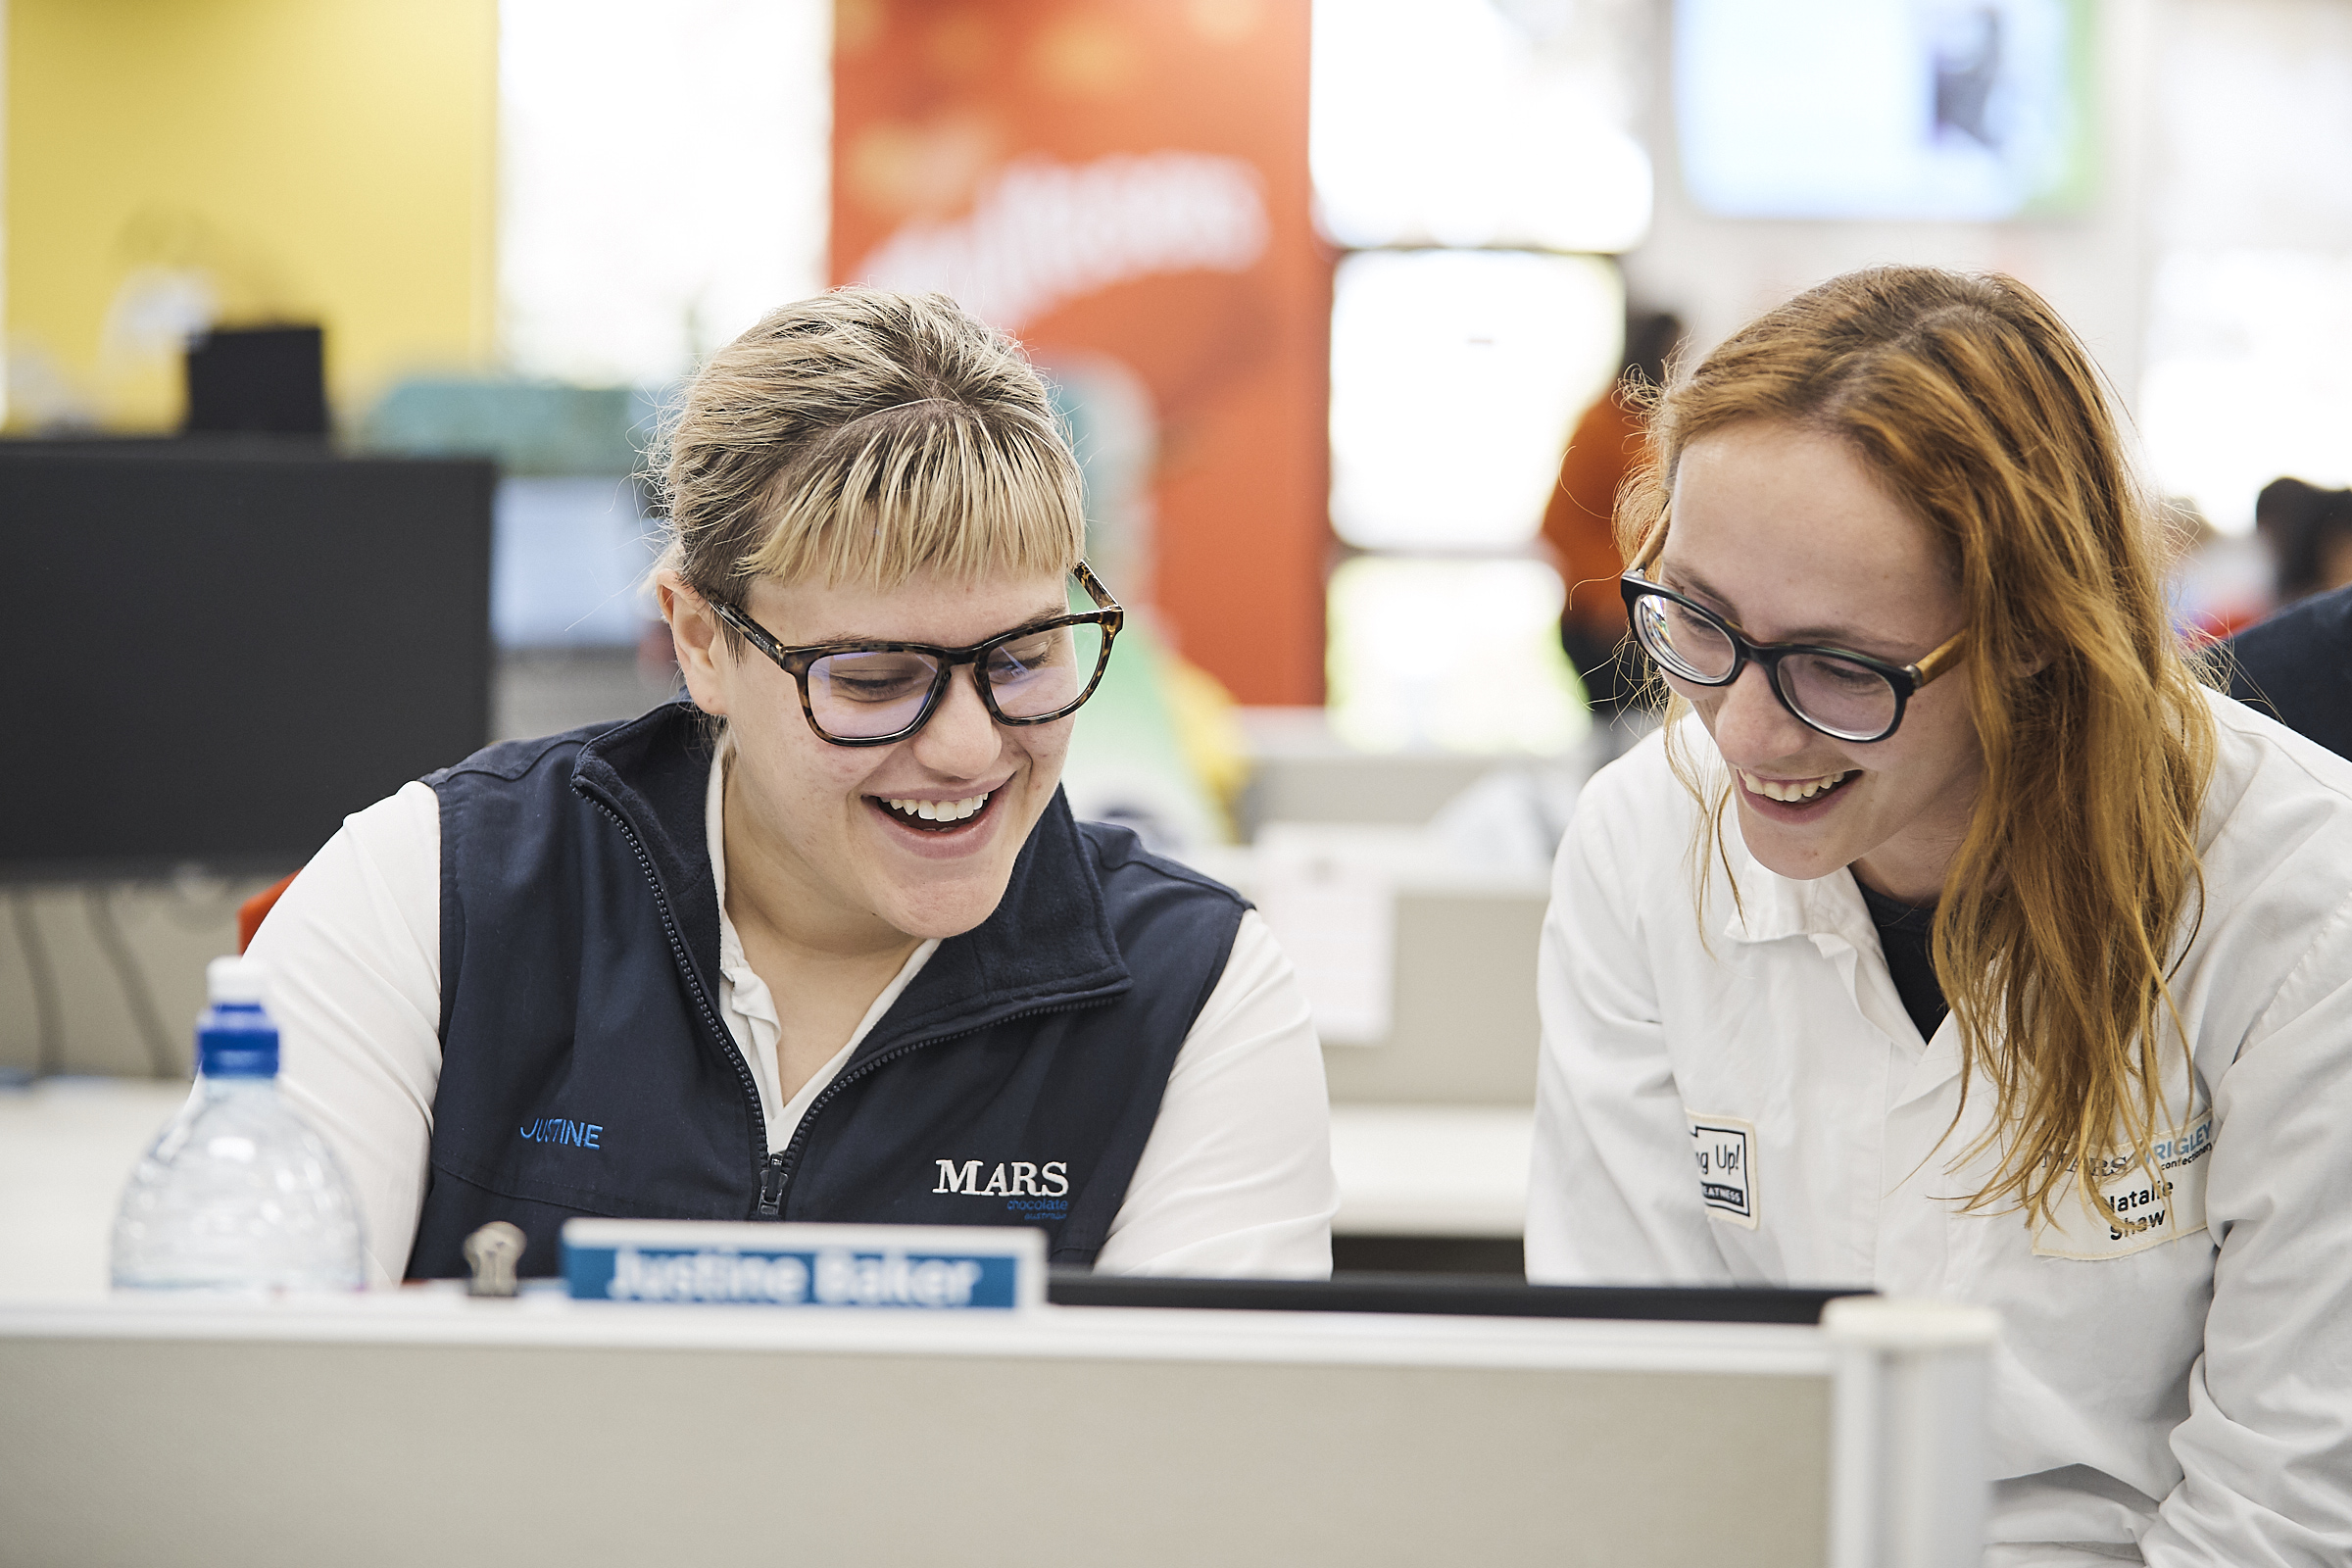 Our_careers_2 (Women play a powerful role at mars)